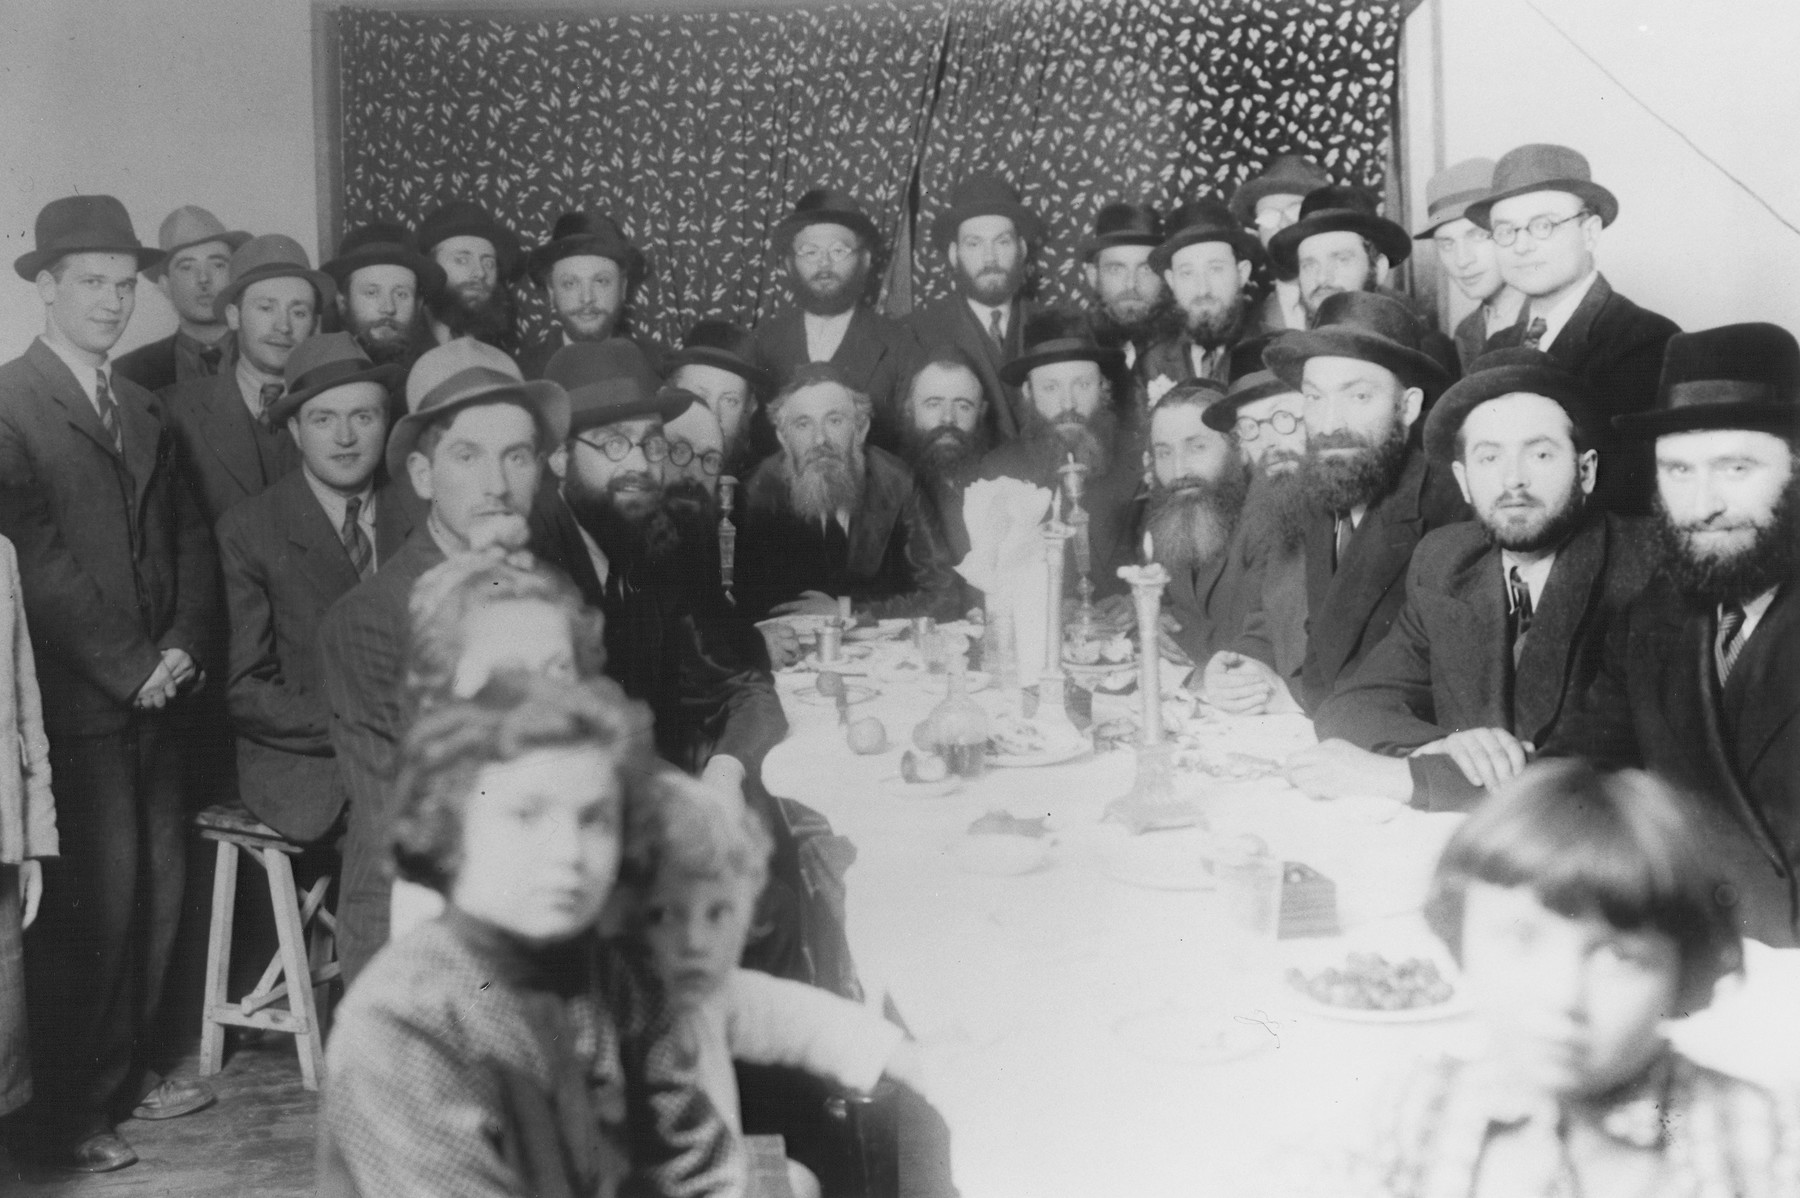 Group portrait of religious Jewish refugees from Poland at a dinner in Shanghai.  Among those pictured are Rabbi Walkin and his daughters.